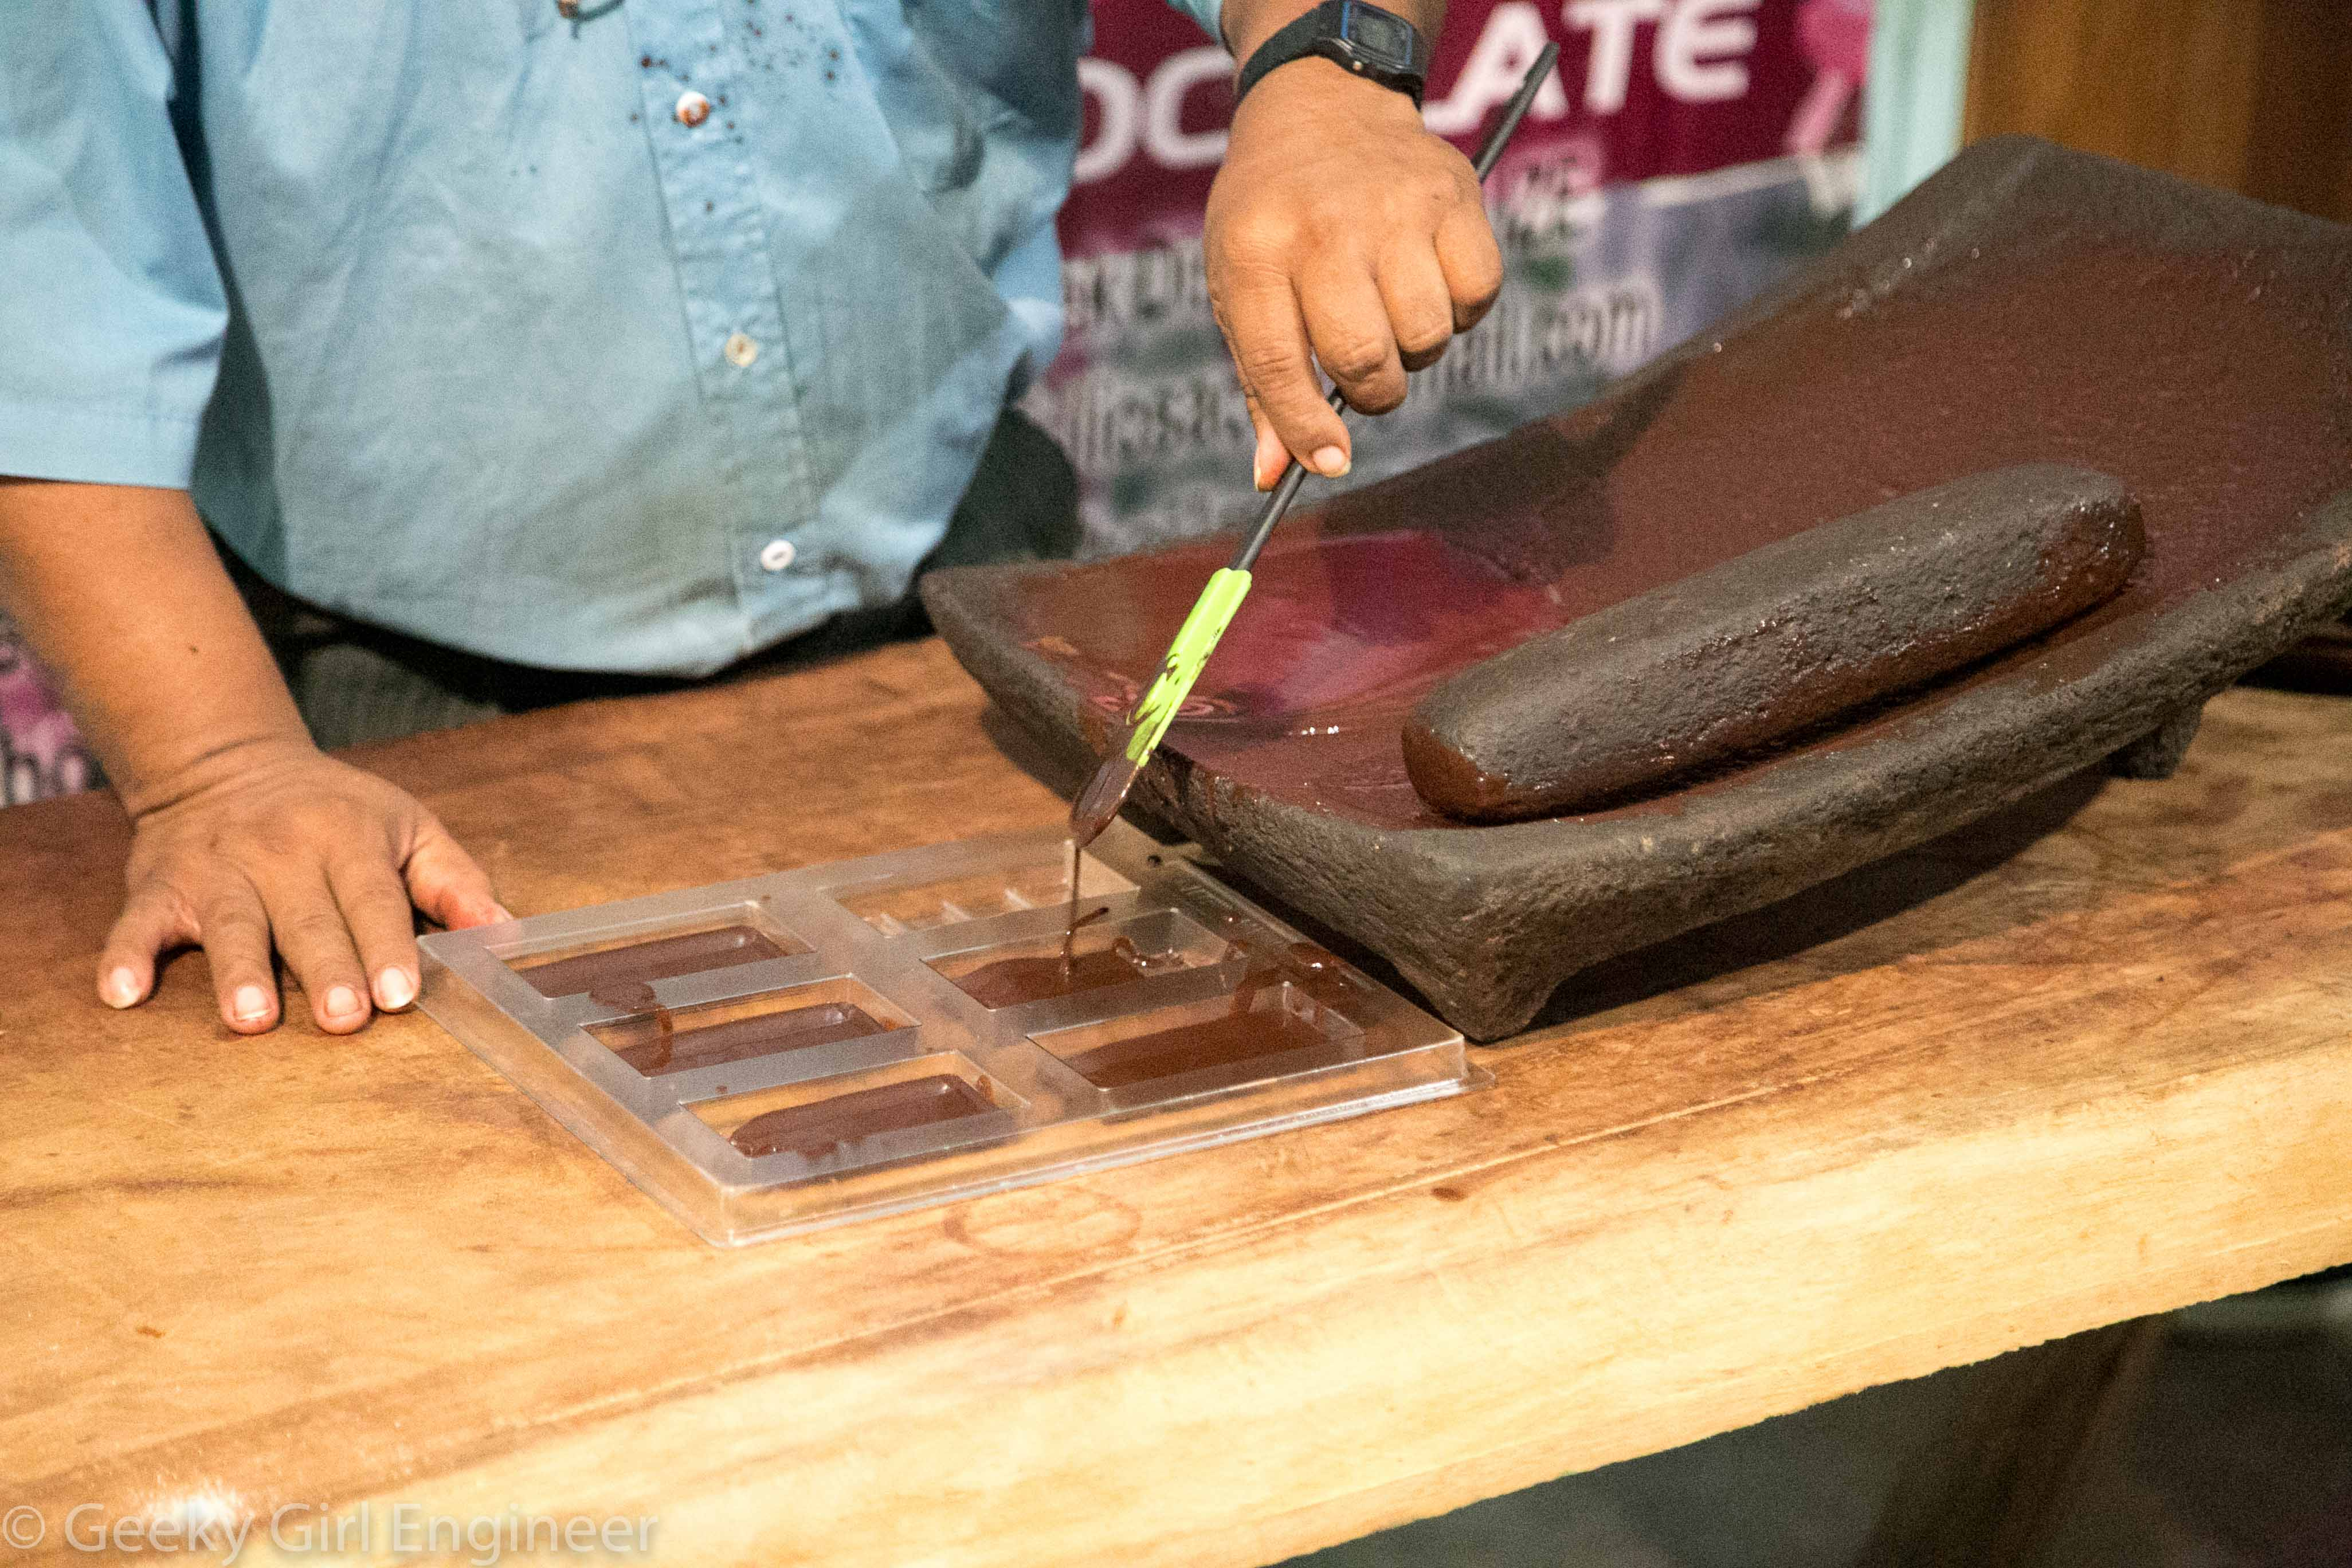 Pouring chocolate into forms